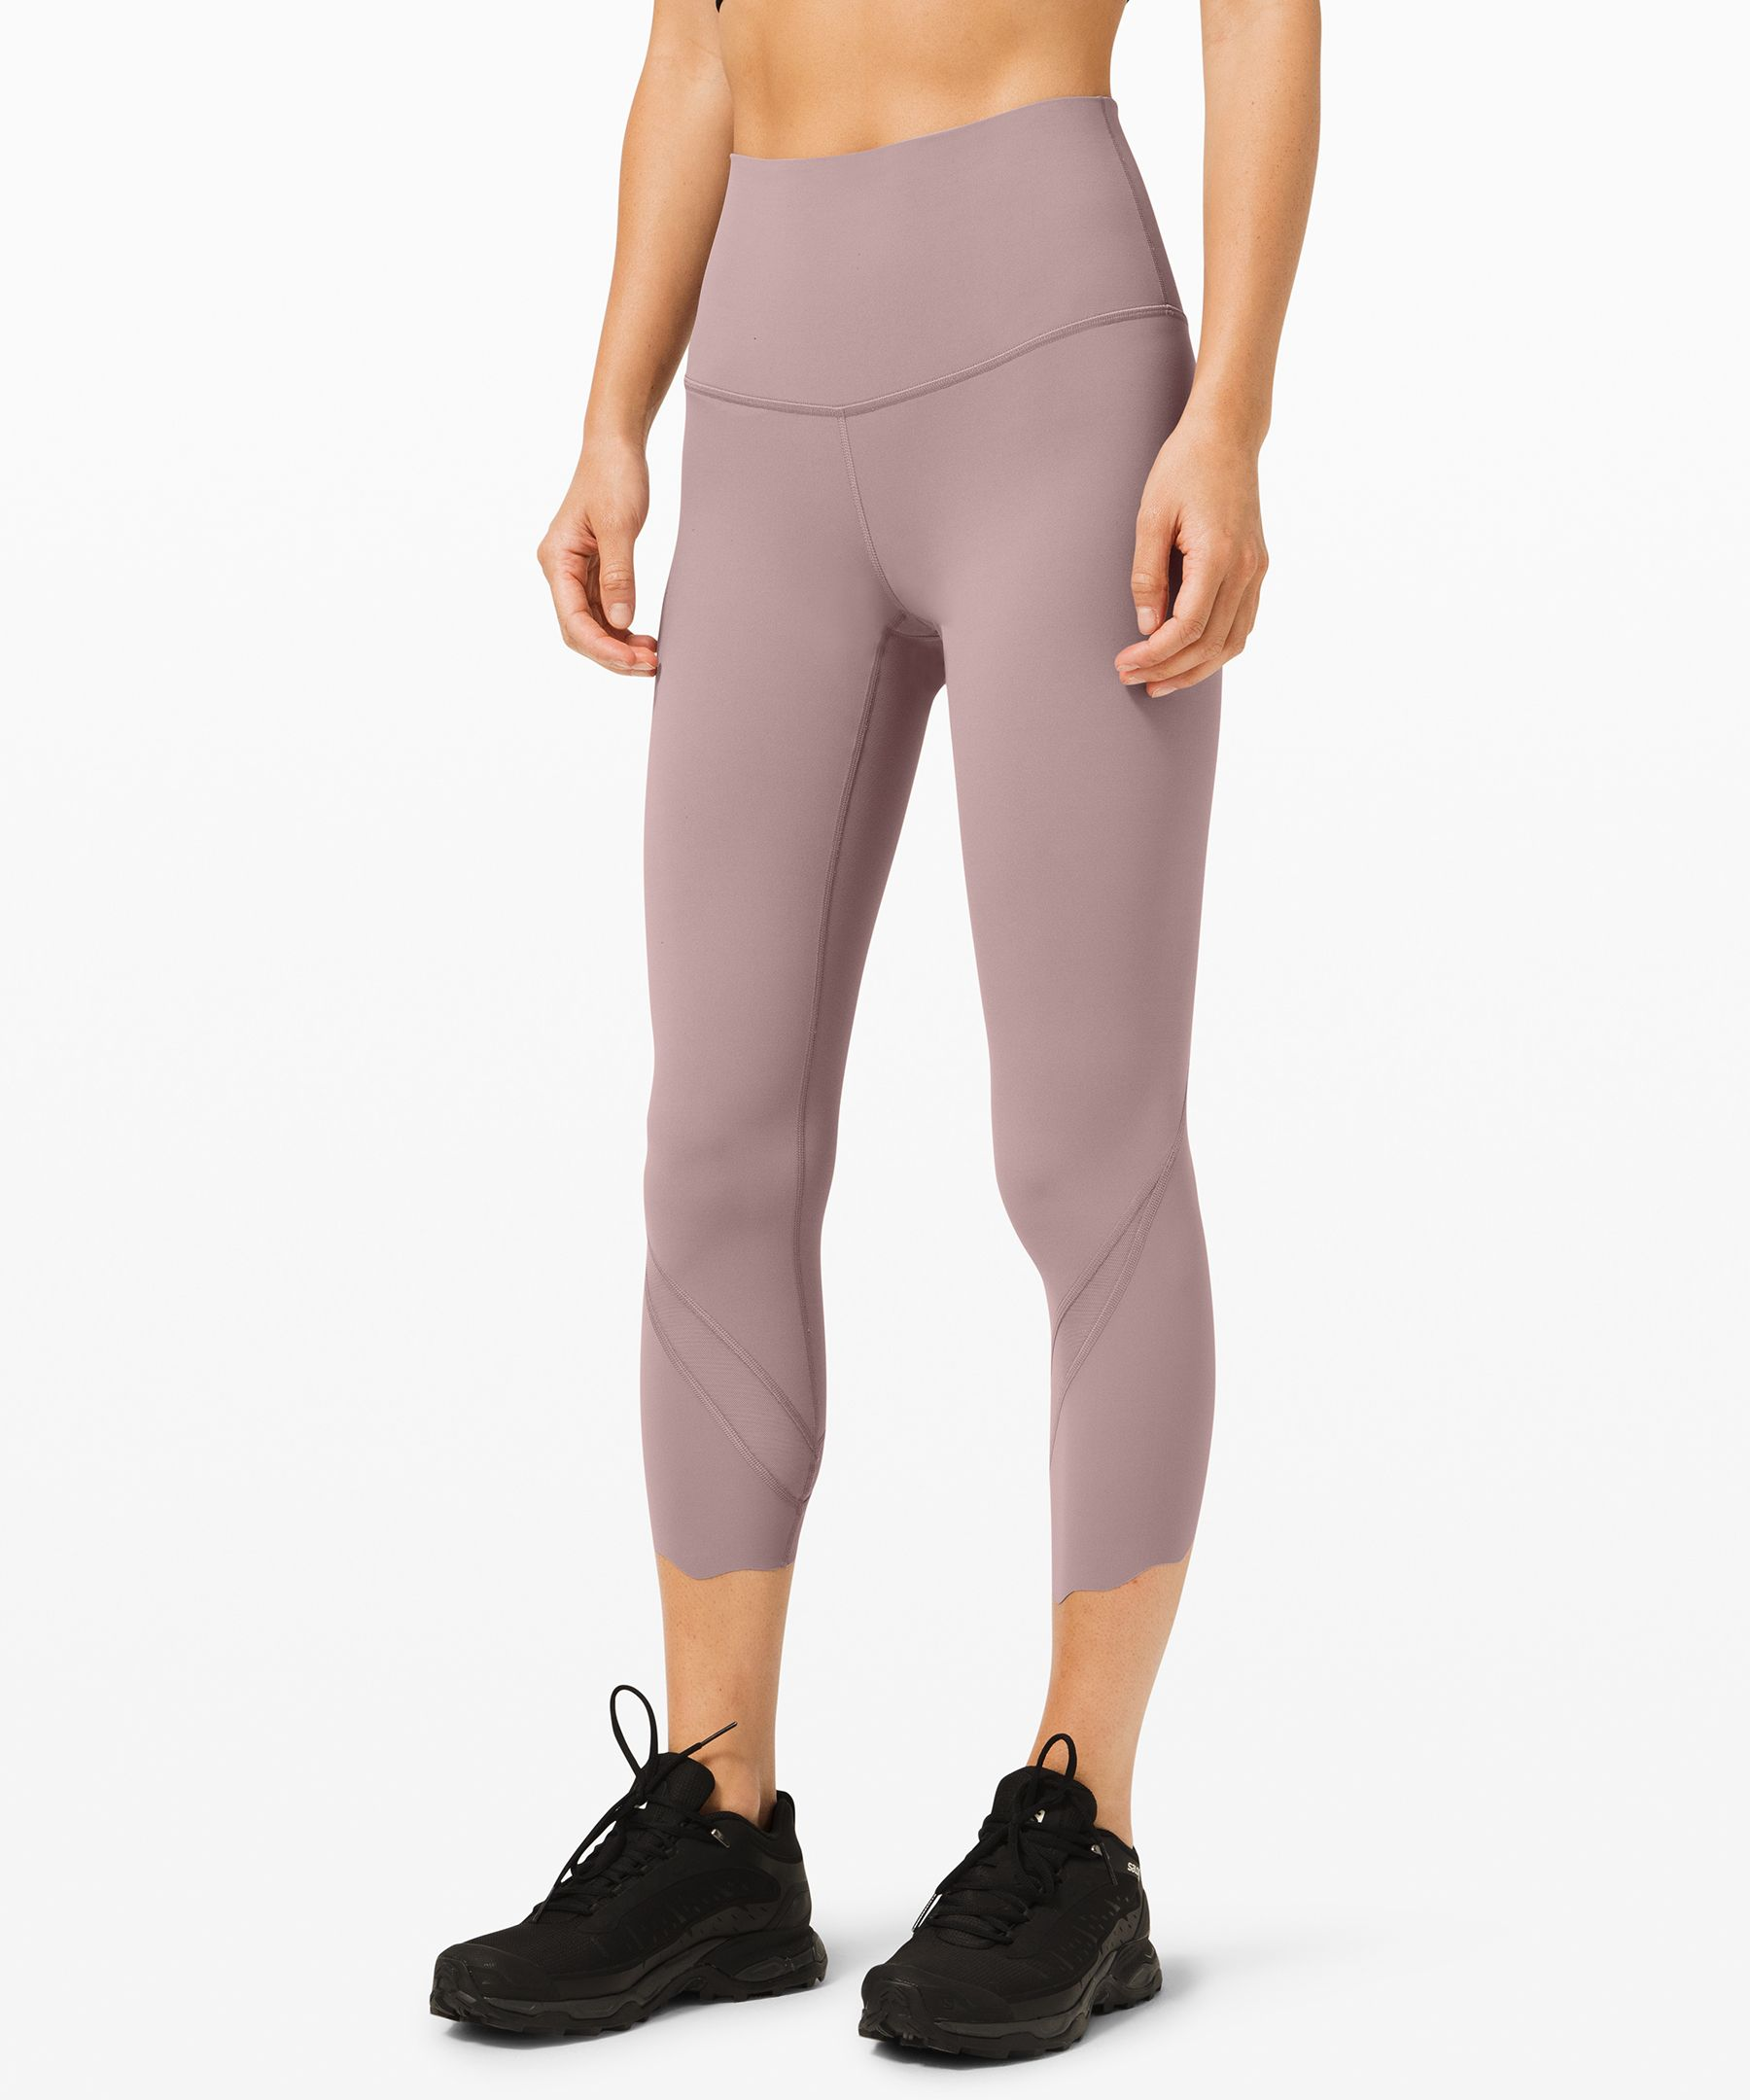 Wunder Under Crop High-Rise Roll Down Scallop Full-On Luxtreme 23